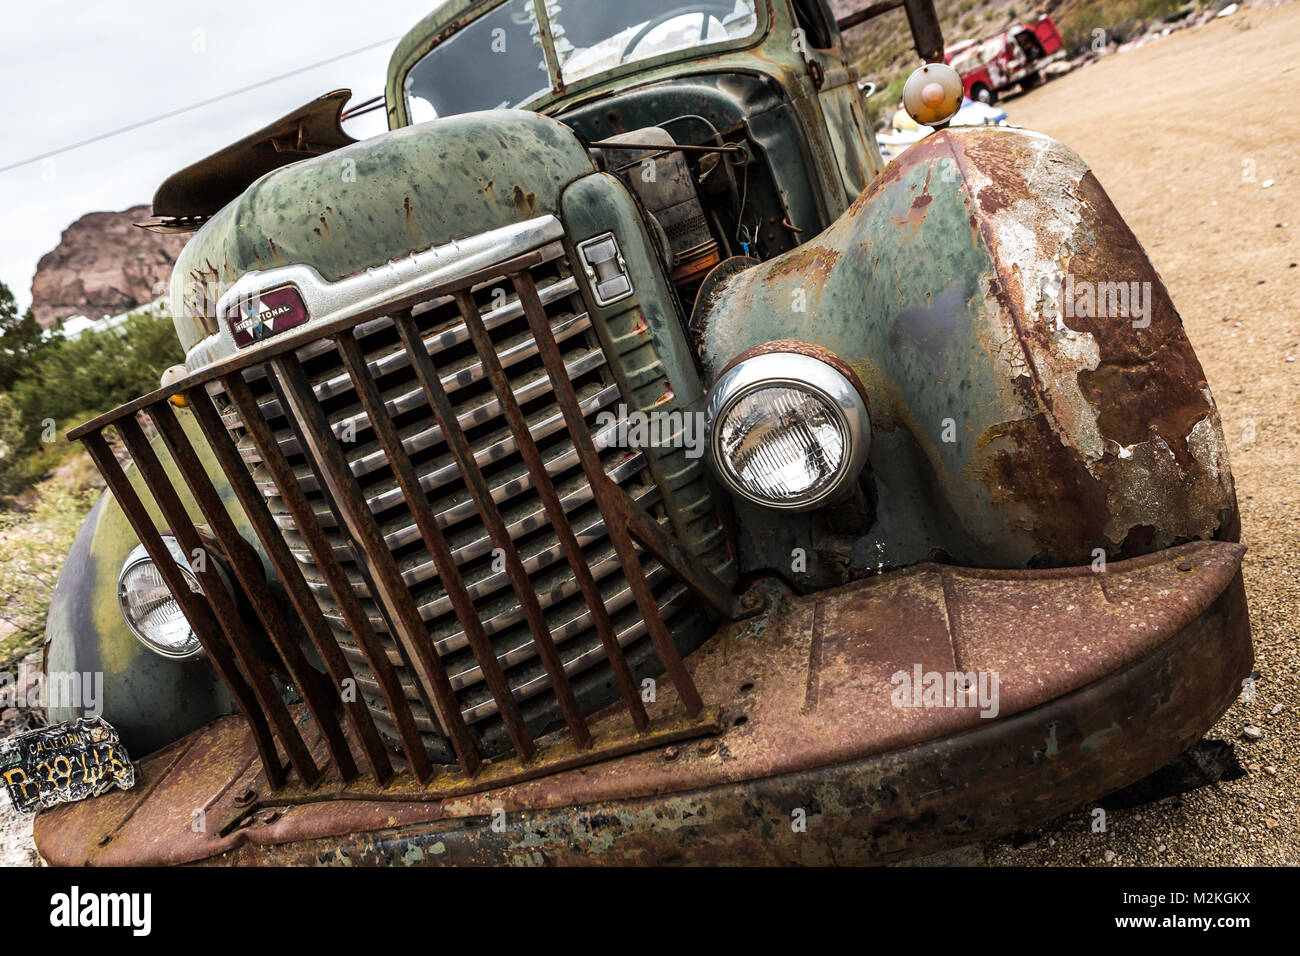 Old Rusty Truck Stock Photos & Old Rusty Truck Stock Images - Alamy